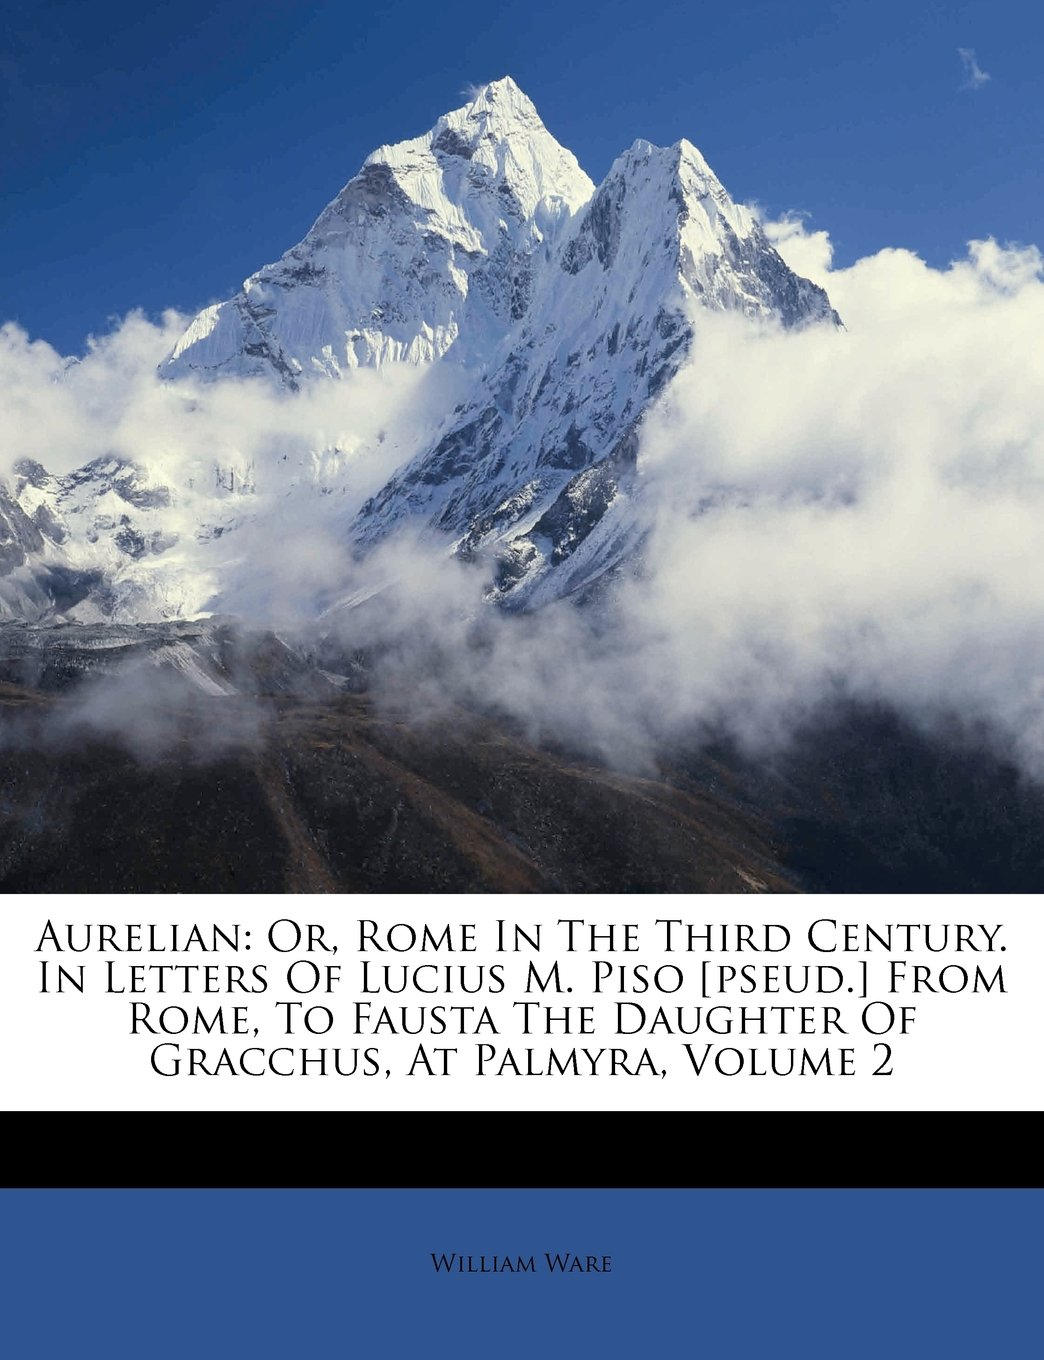 Aurelian: Or, Rome In The Third Century. In Letters Of Lucius M. Piso [pseud.] From Rome, To Fausta The Daughter Of Gracchus, At Palmyra, Volume 2 pdf epub